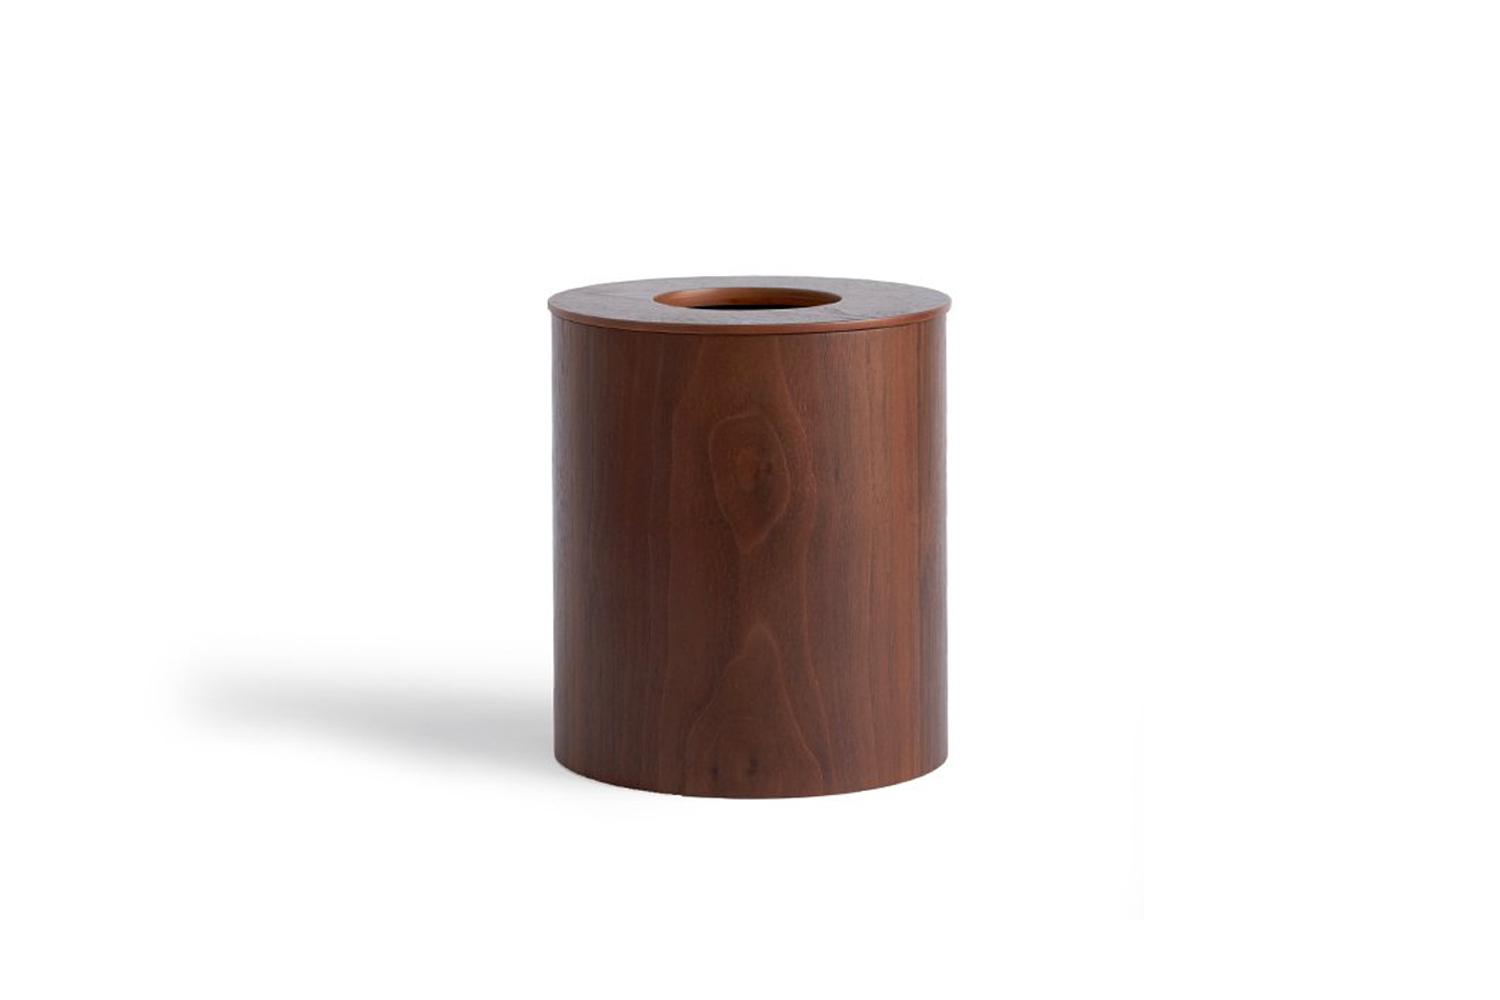 The Saito Wood Co. Walnut Paper Waste Basket with Cutout Lid comes in two sizes for $loading=